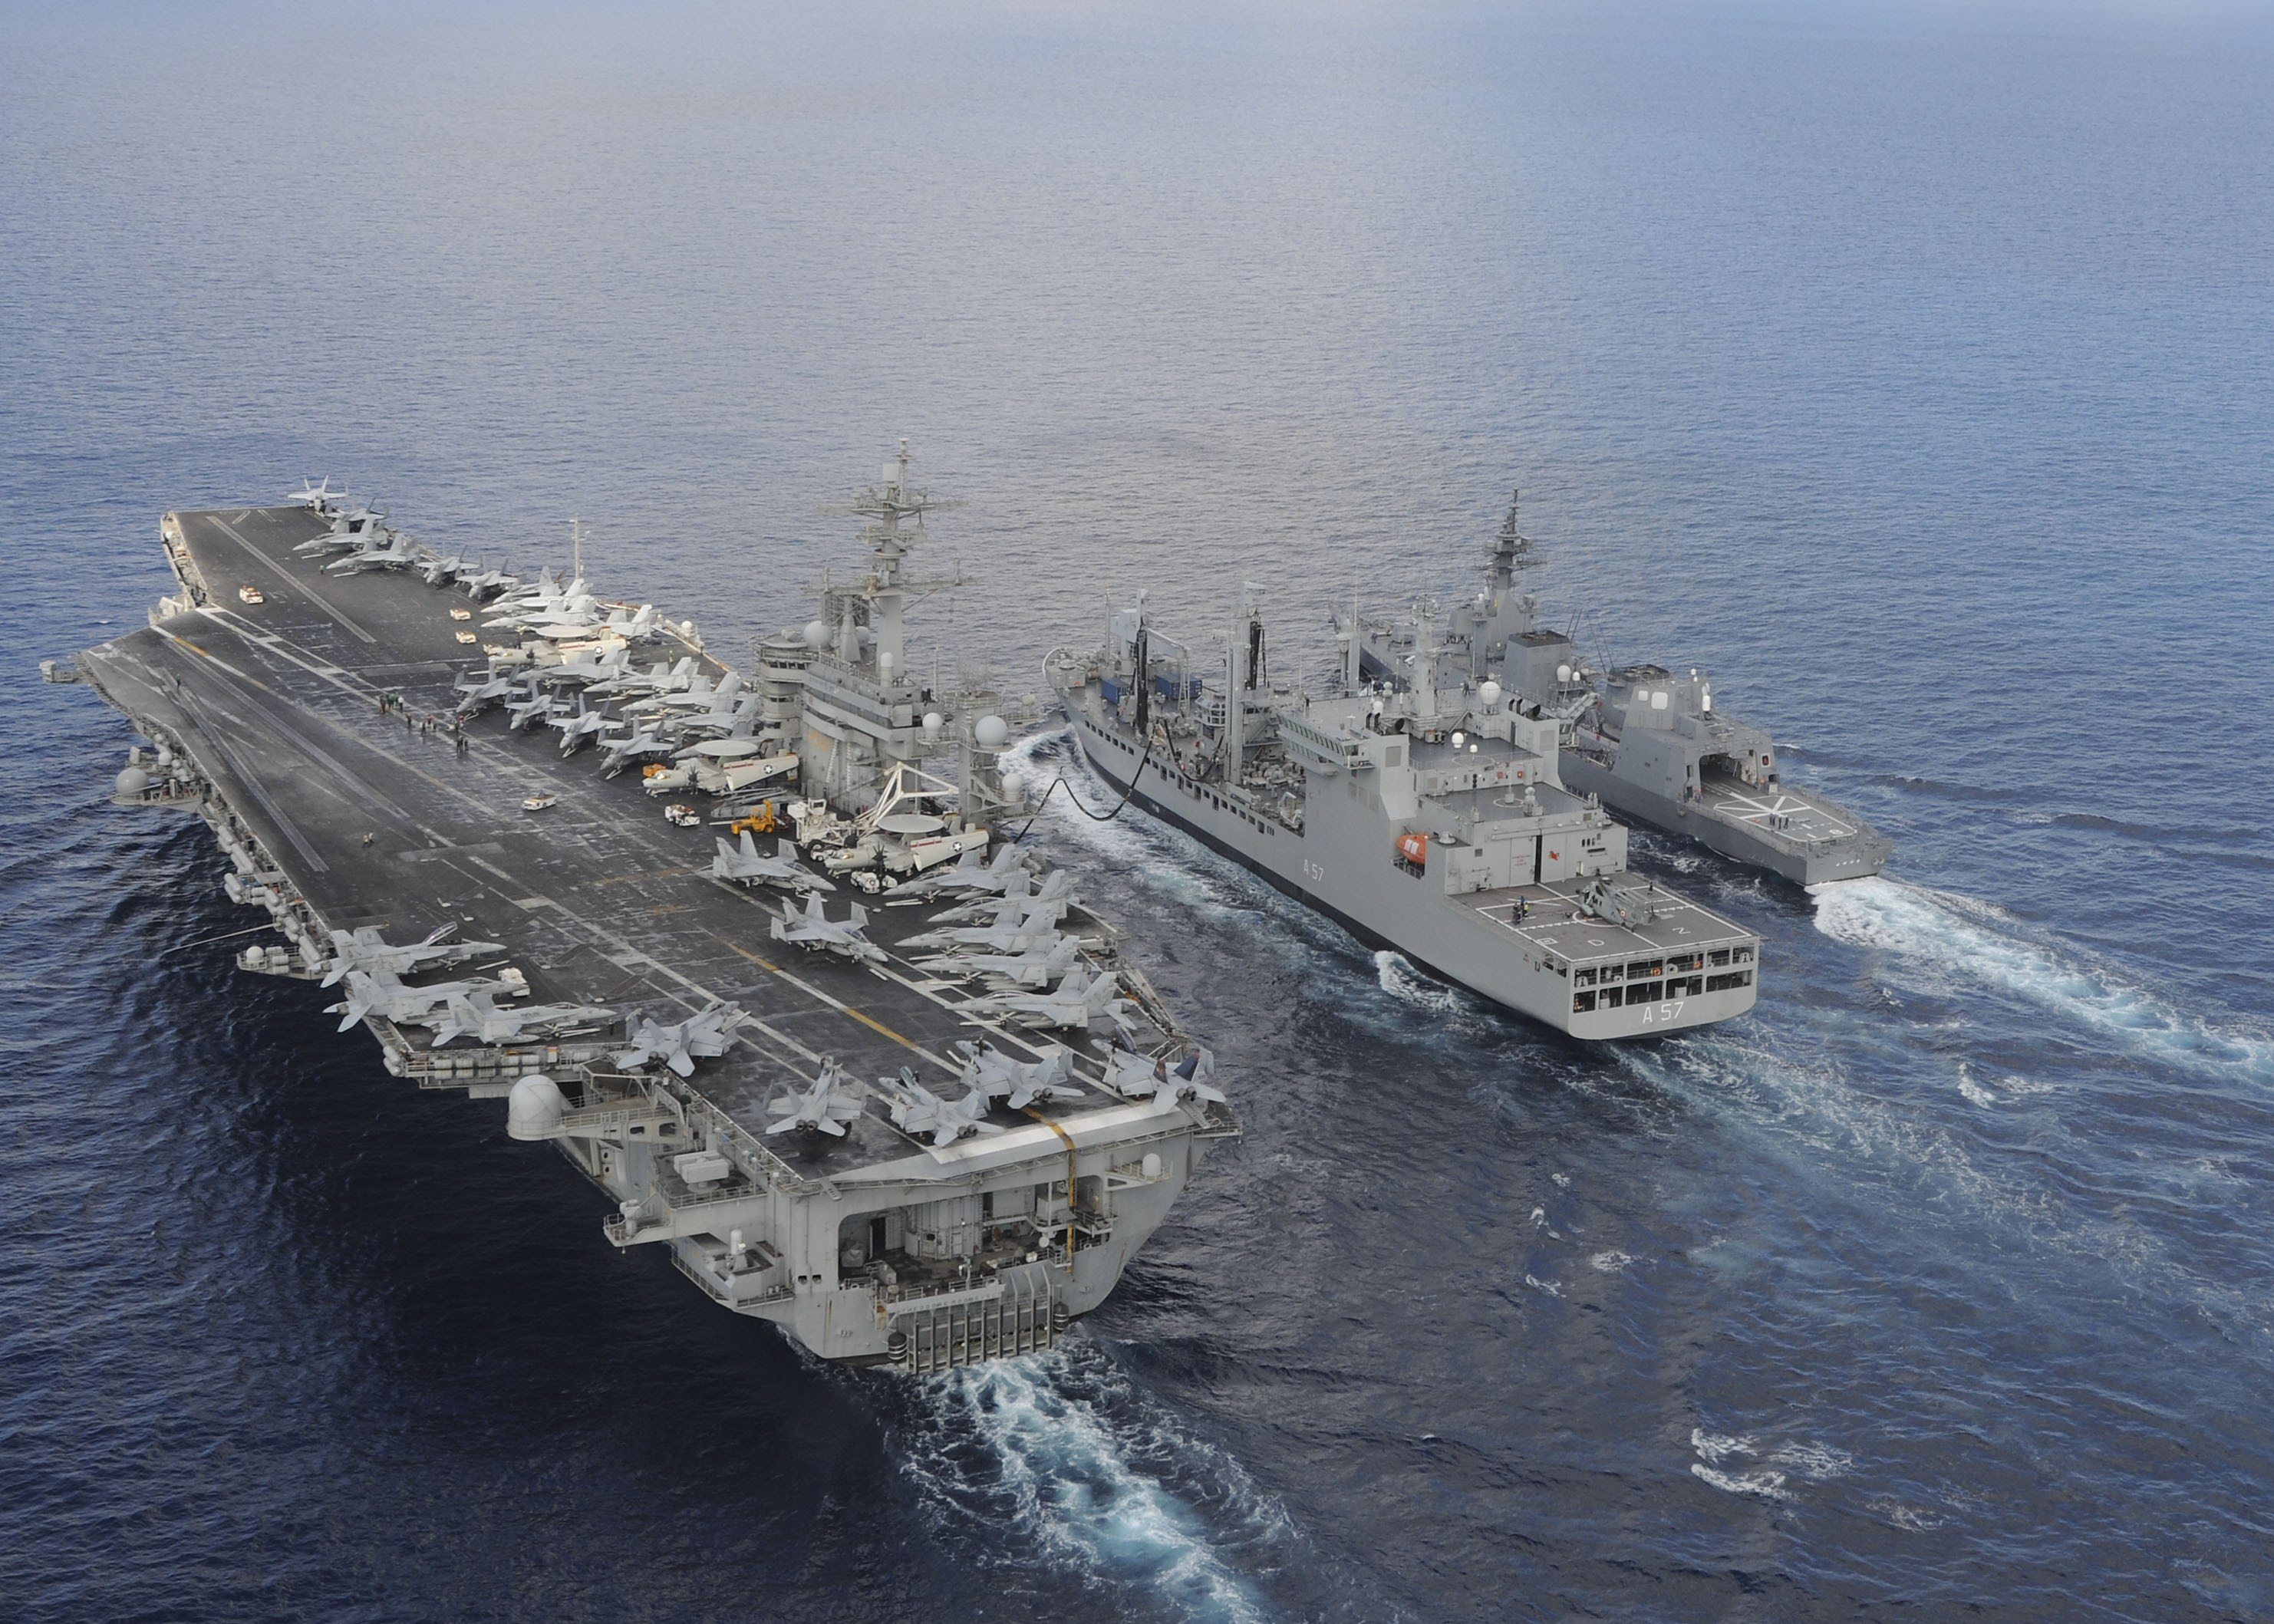 India, USA and Japan converge close to the doors of South China Sea as Exercise Malabar kicks off Japanese Coast.